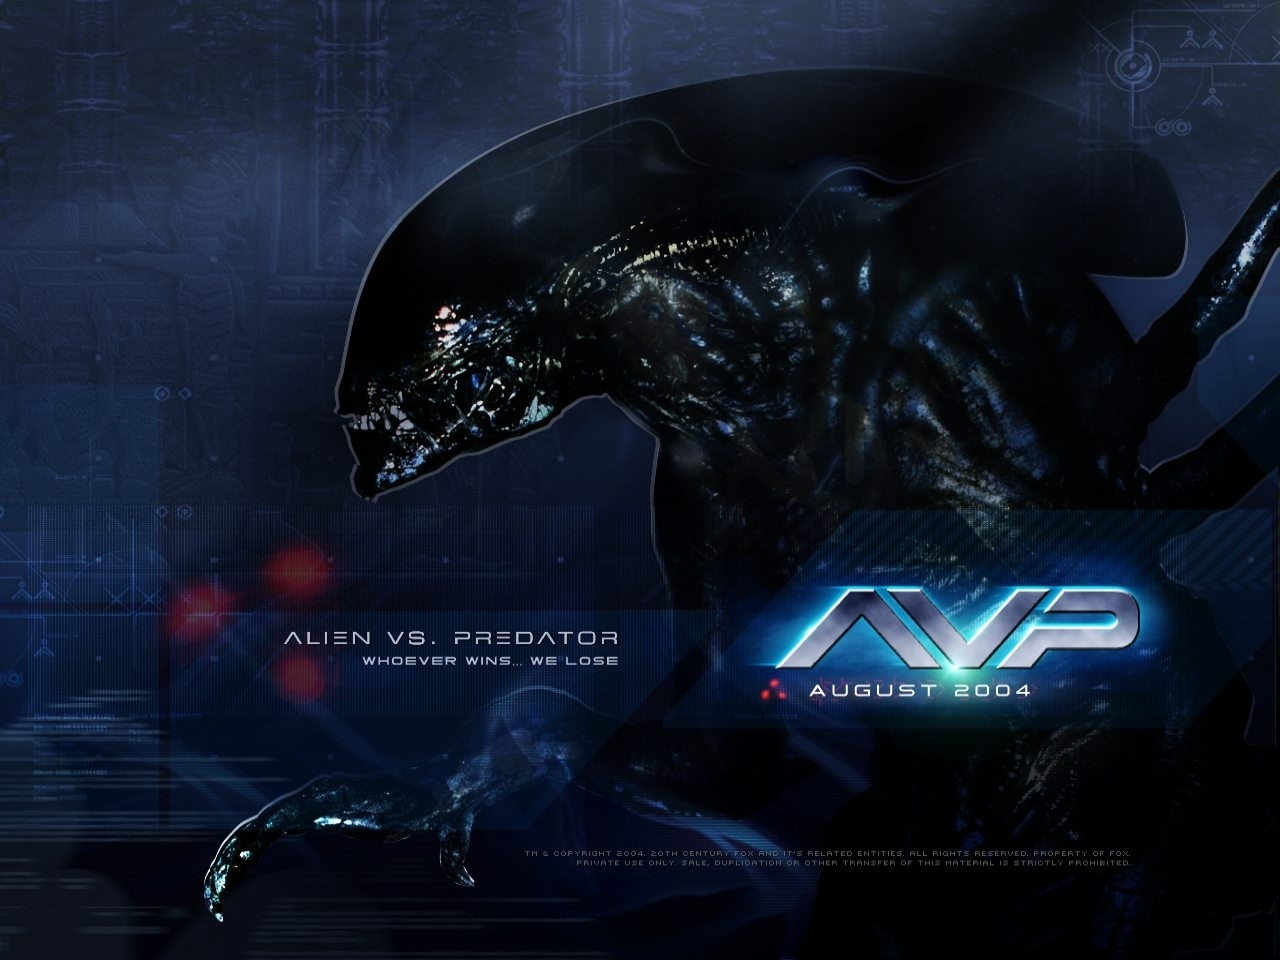 Wallpaper del film Alien Vs. Predator